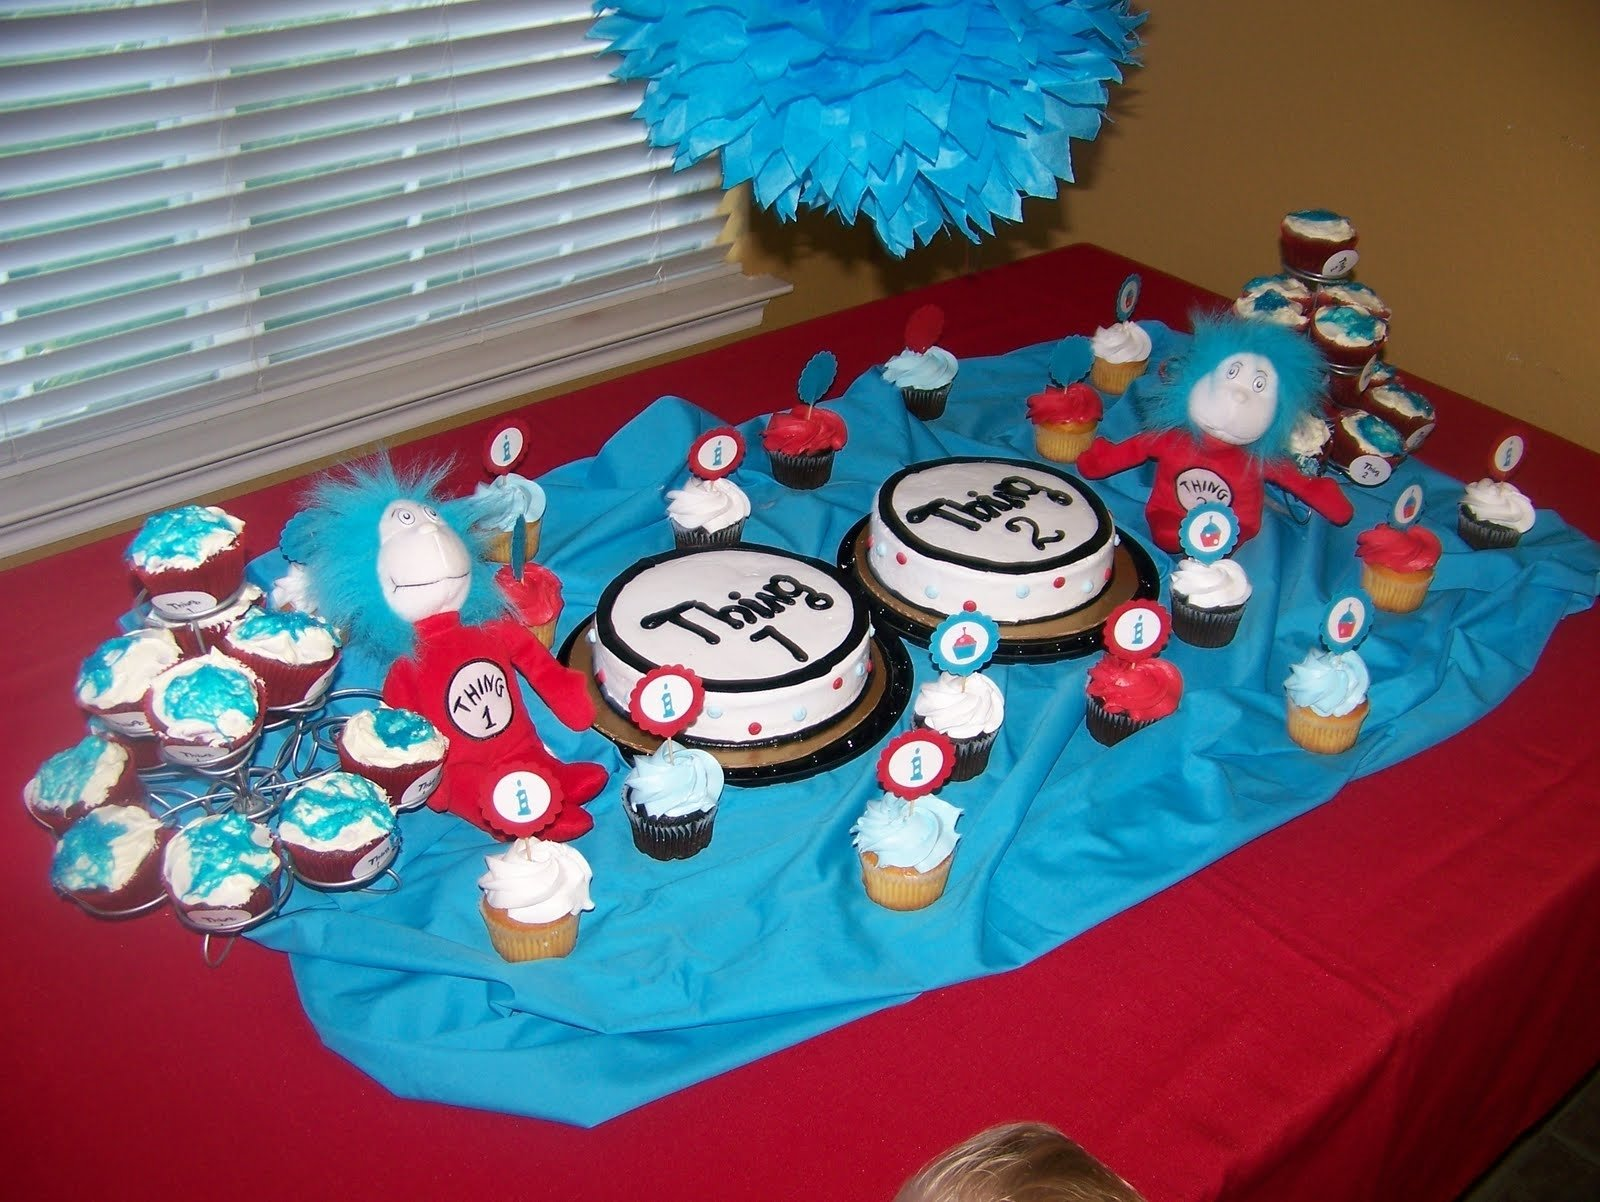 10 Awesome Thing 1 And Thing 2 Cake Ideas dr seuss thing 1 thing 2 birthday party giggles galore